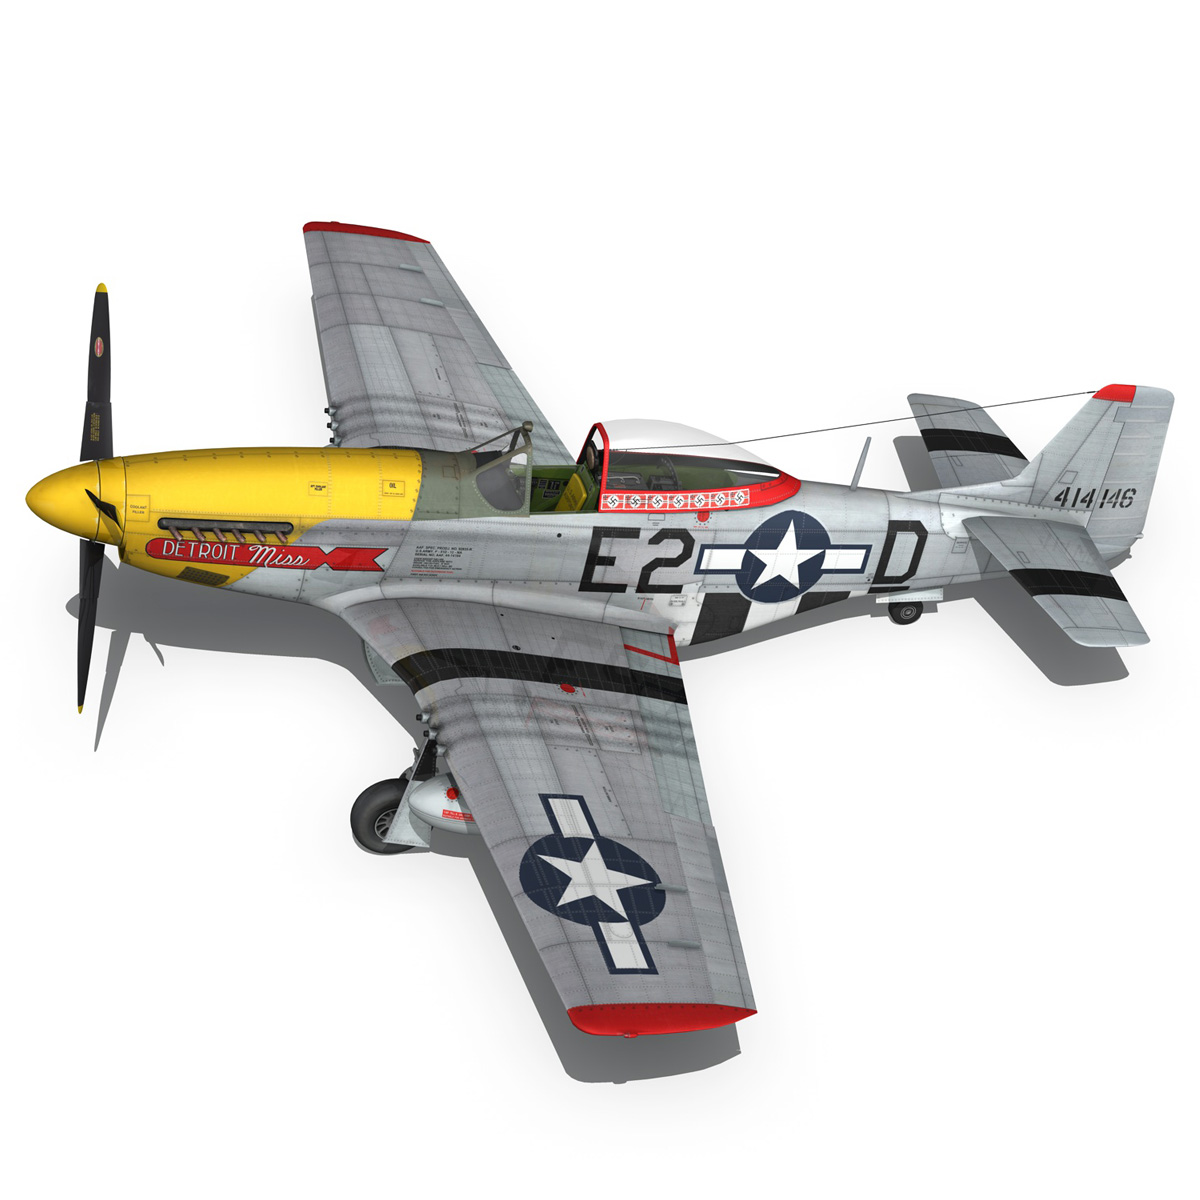 north american p-51d – mustang – detroit miss 3d model 3ds fbx c4d lwo obj 267602